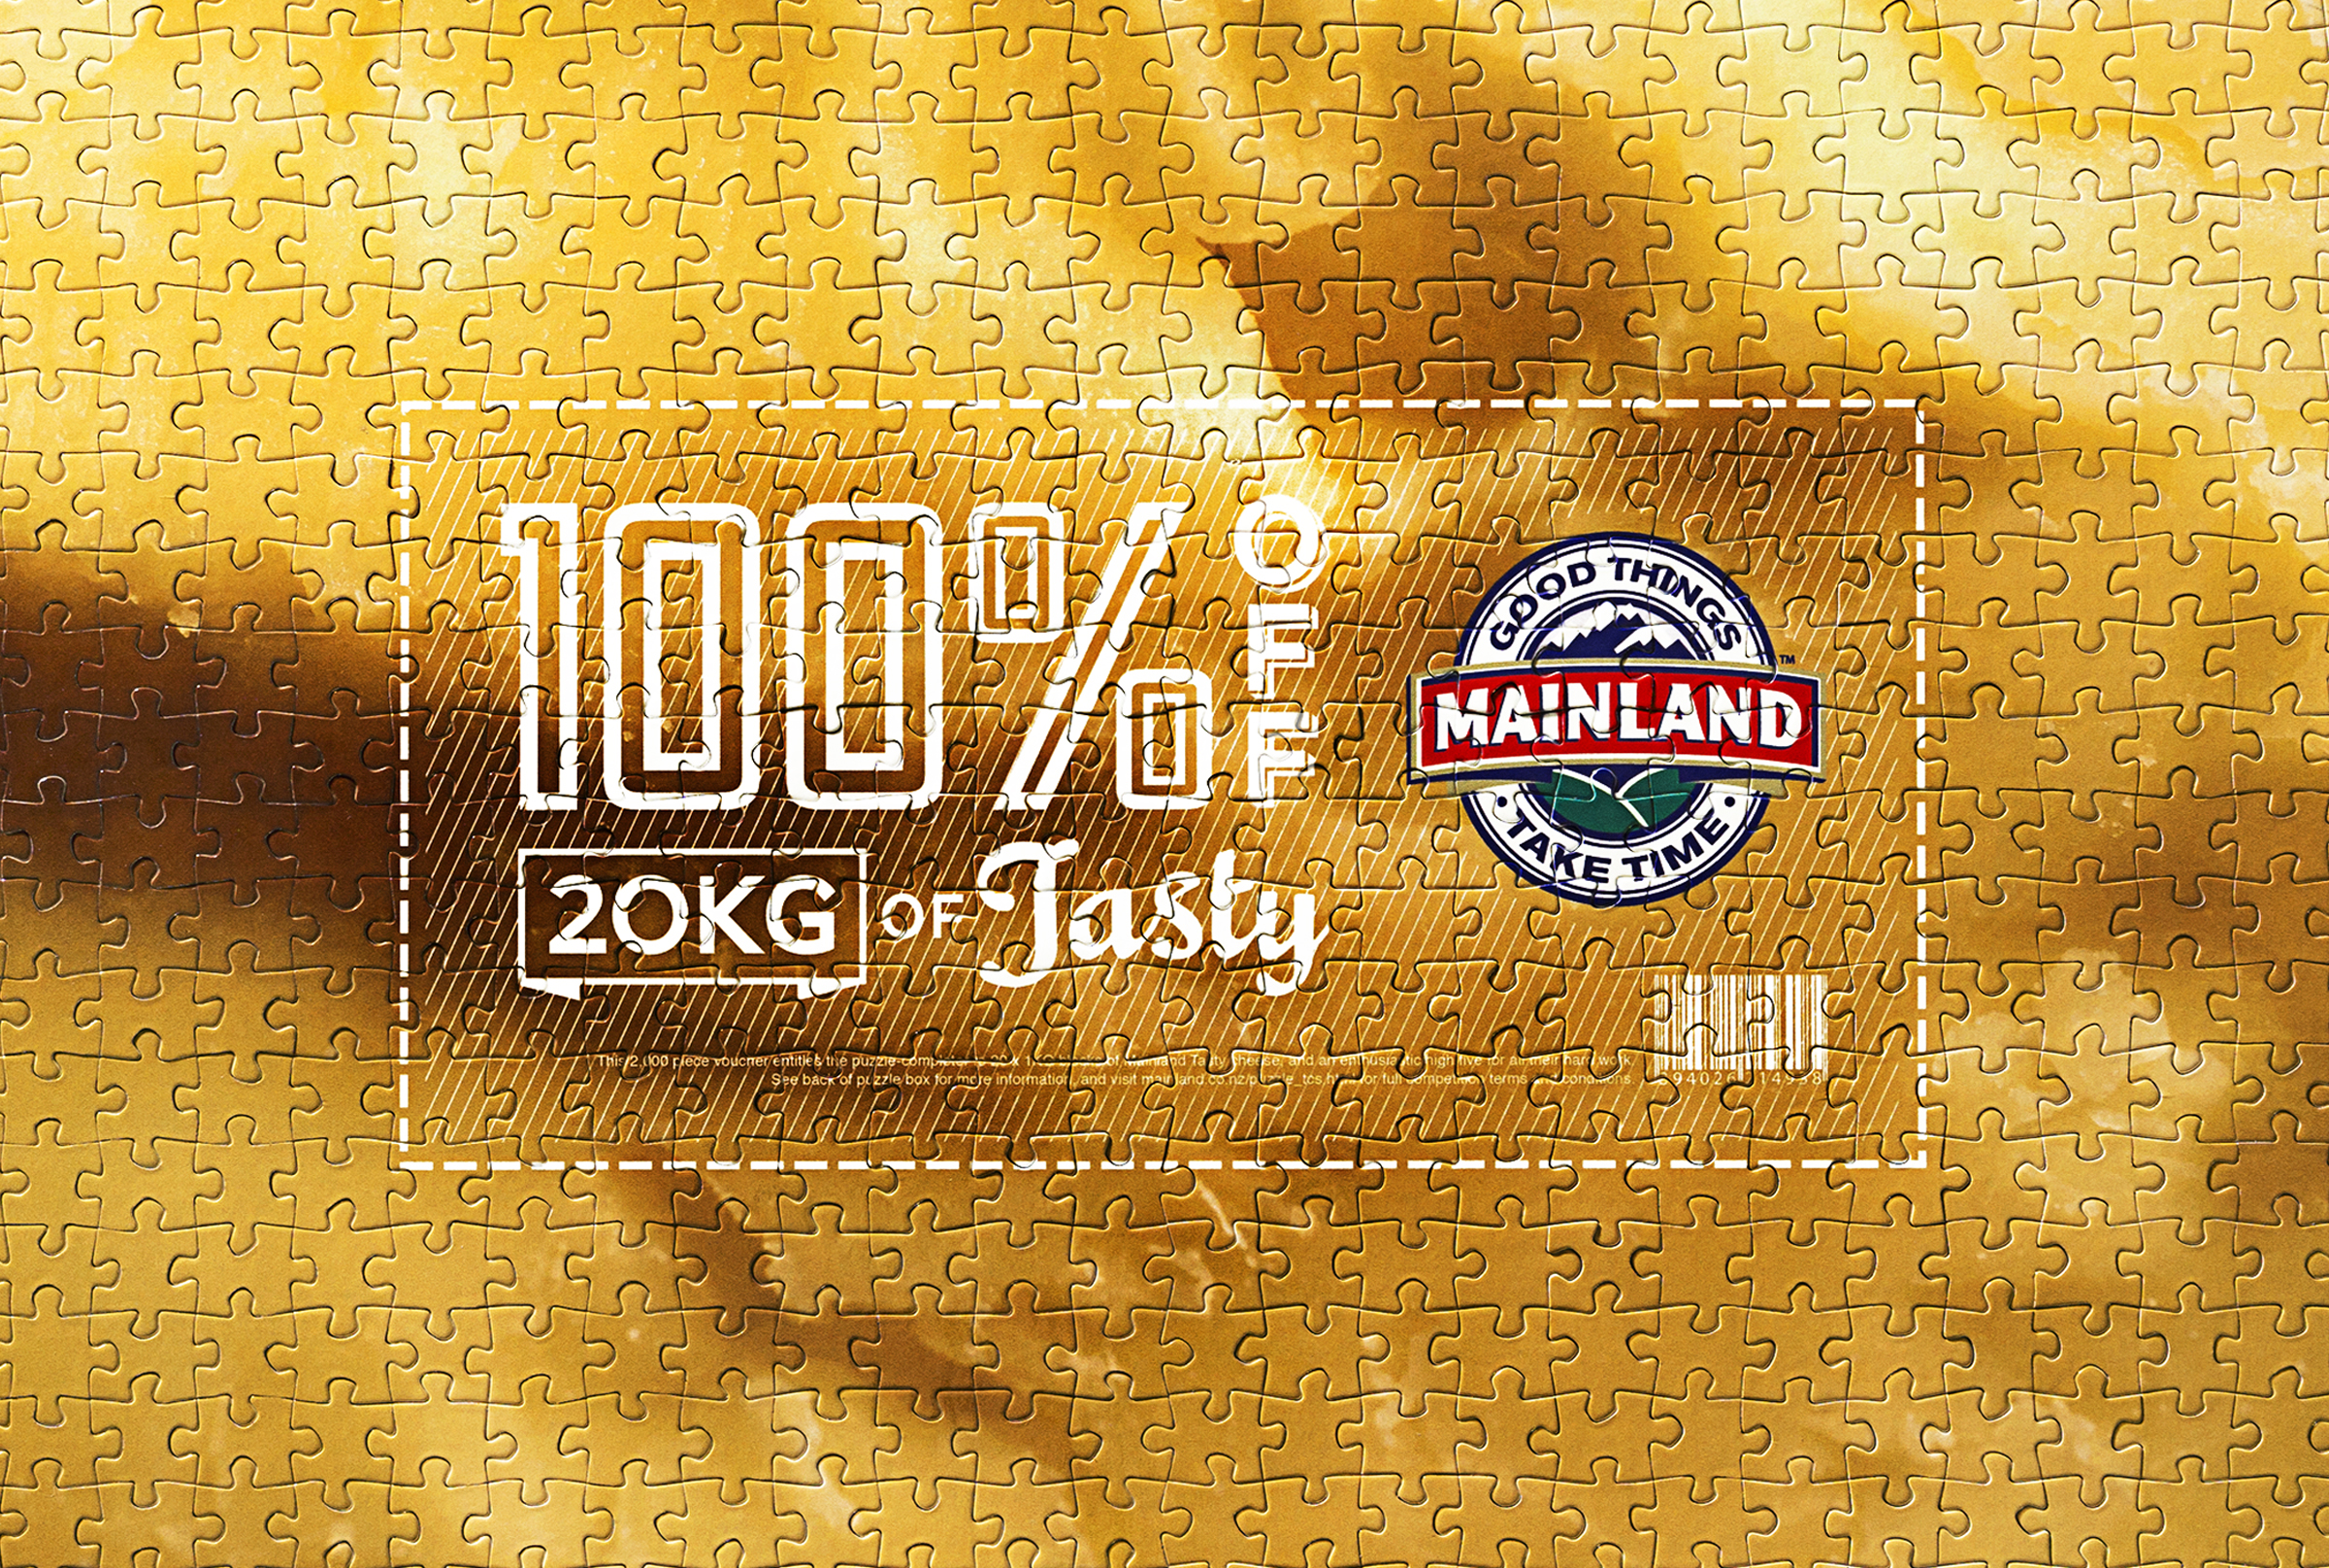 Mainland Launches The Mainland 2,000-Piece Voucher